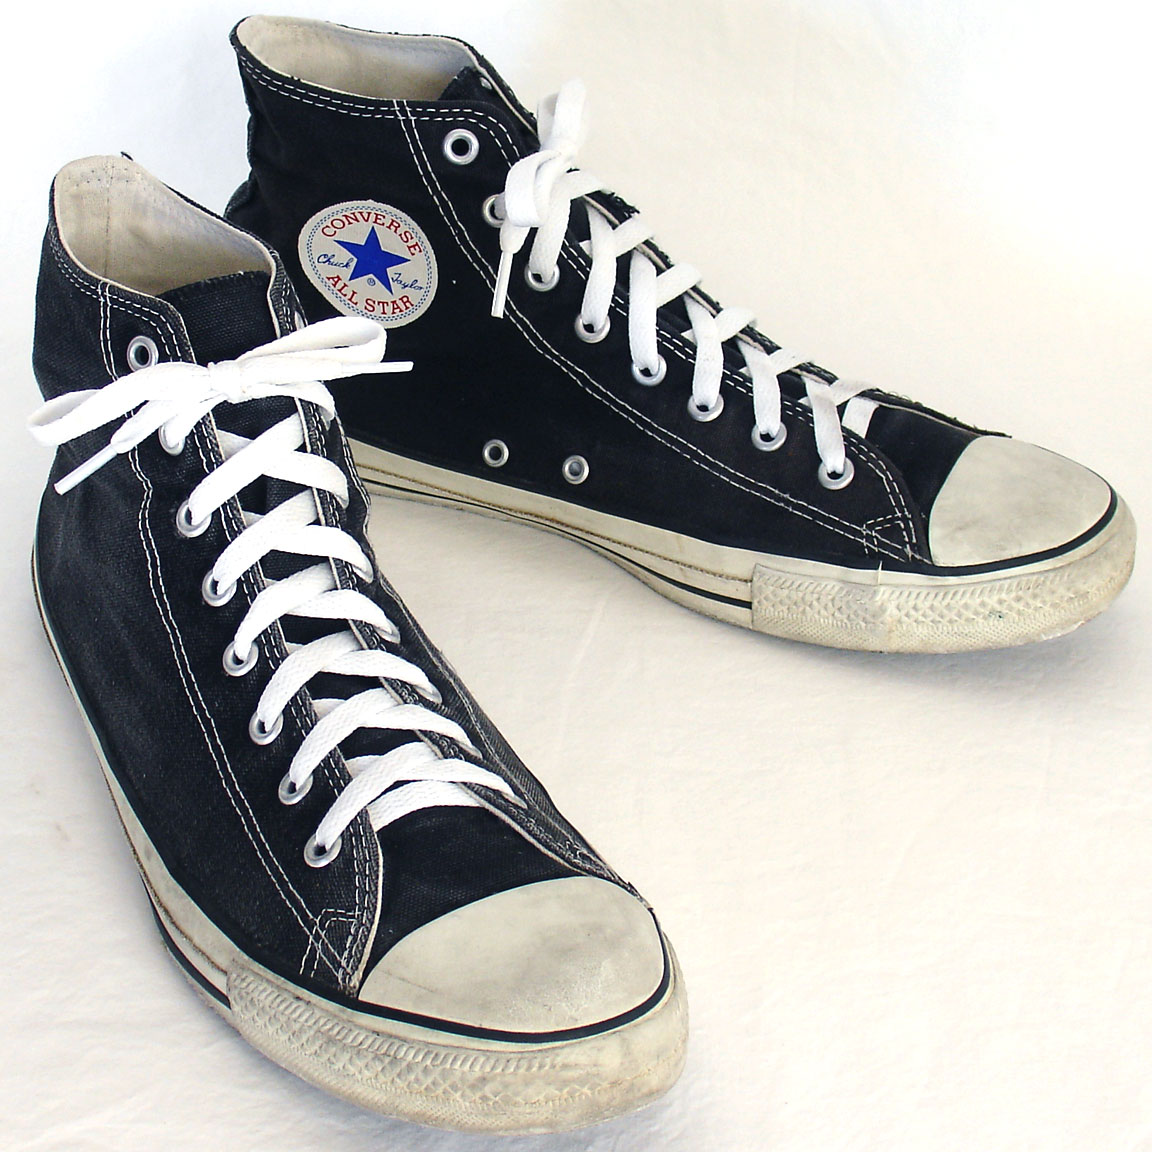 0b58113837df Vintage American-made Converse All Star Chuck Taylor black hi-top shoes for  sale